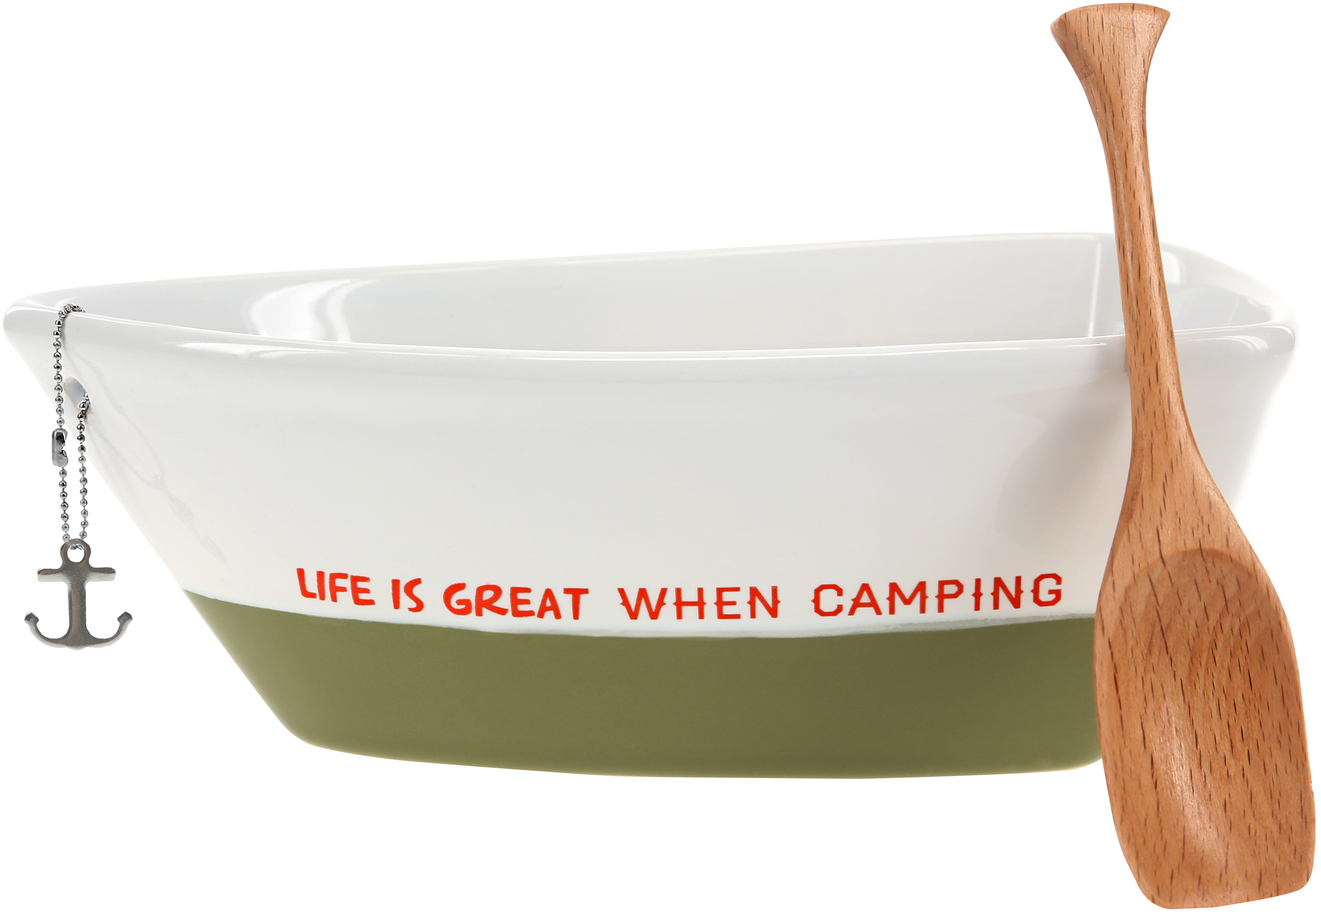 "When Camping by We People - When Camping - 7"" Boat Serving Dish with Oar"